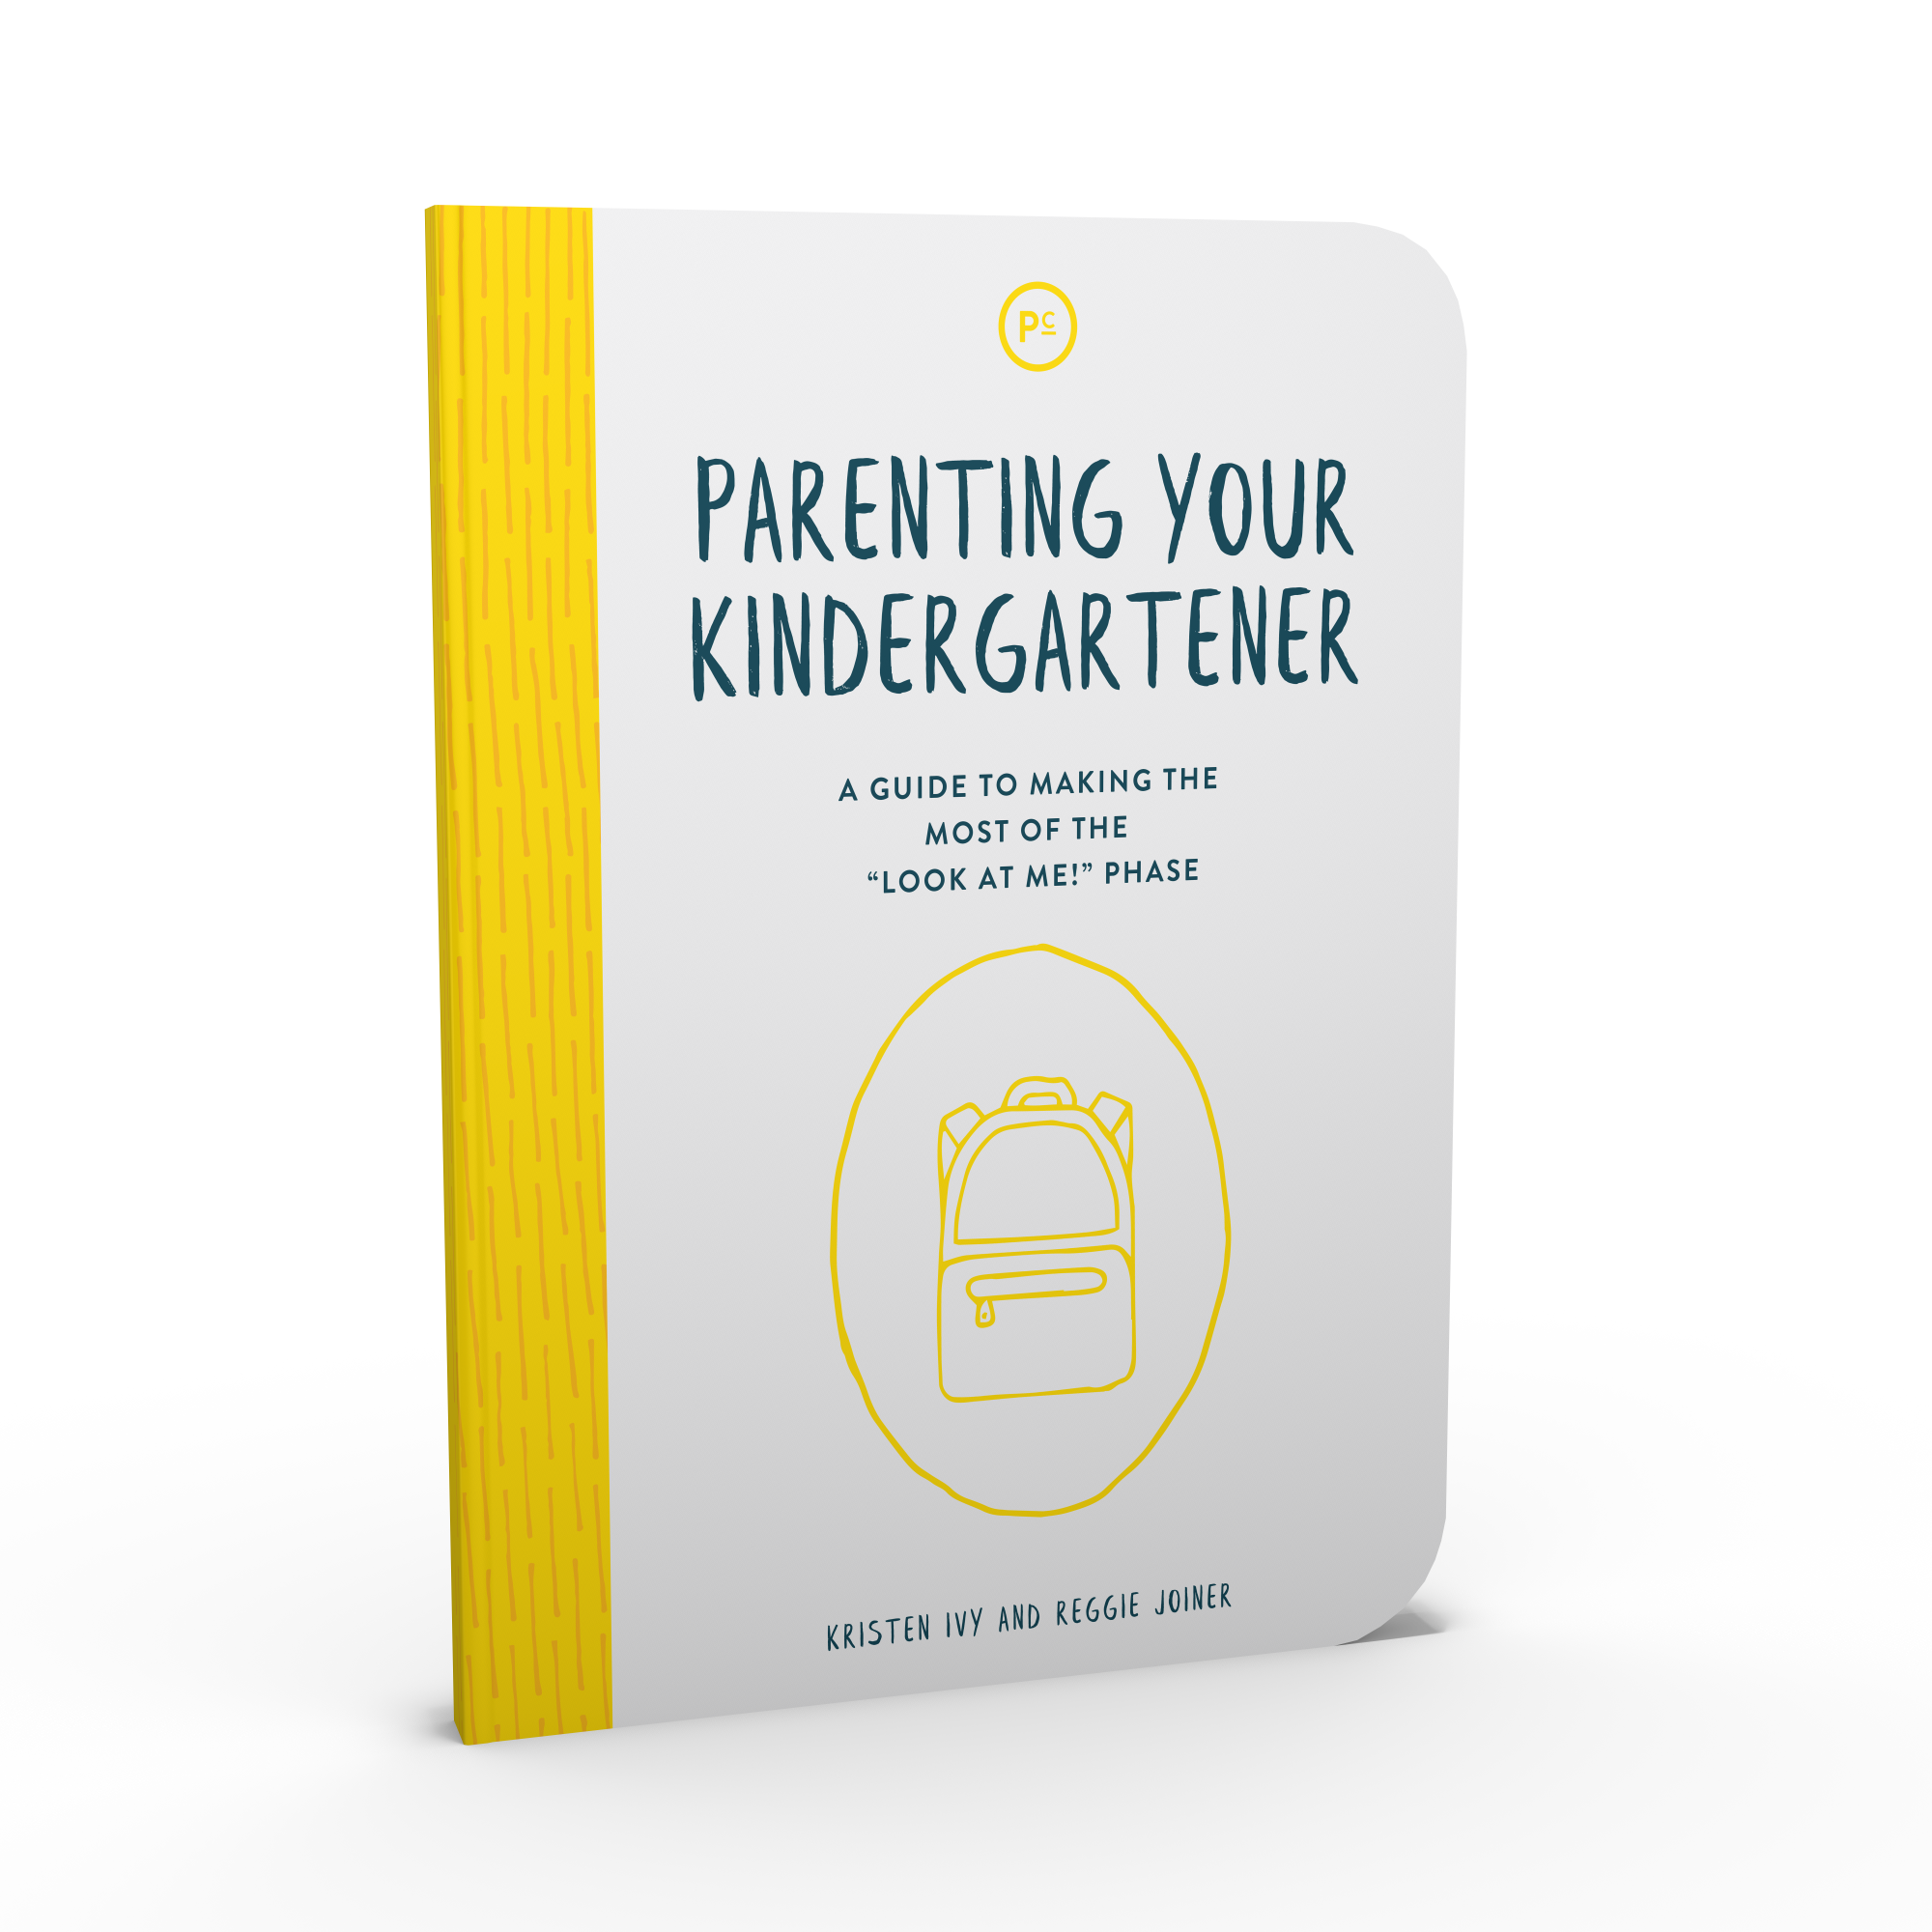 Parenting Your Kindergartener